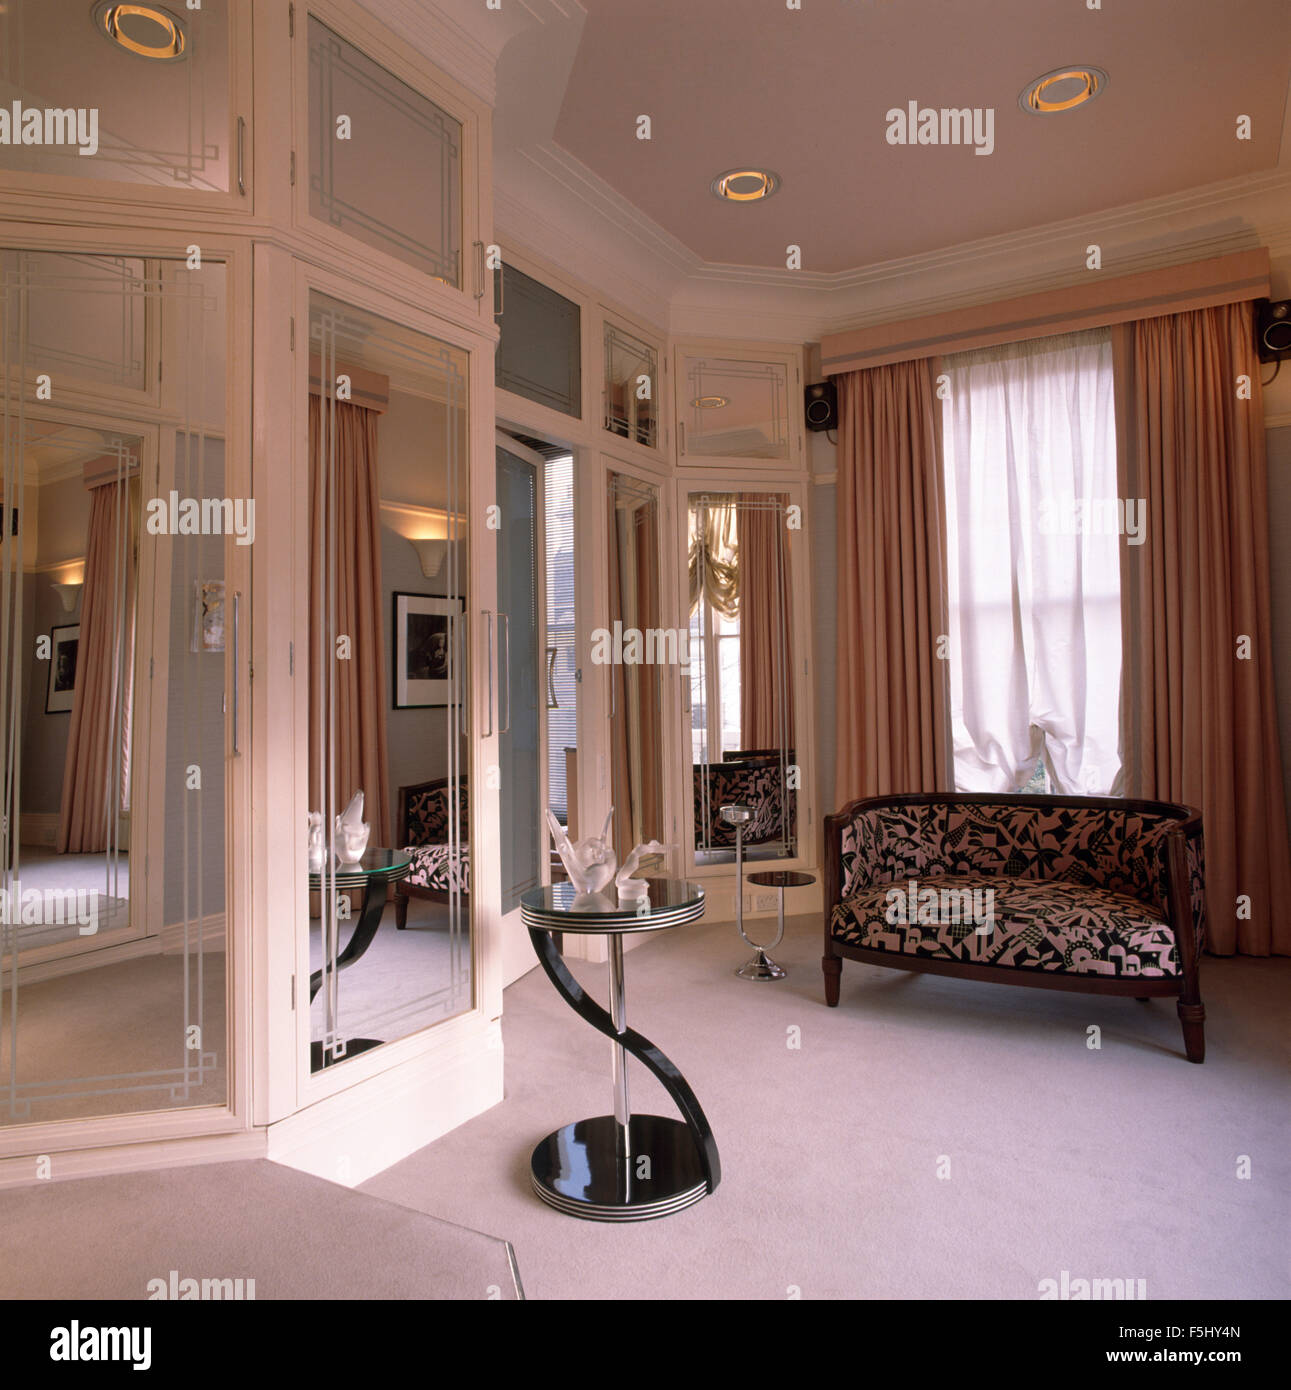 Fitted Wardrobes Stock Photos Fitted Wardrobes Stock Images Alamy - Fitted wardrobes